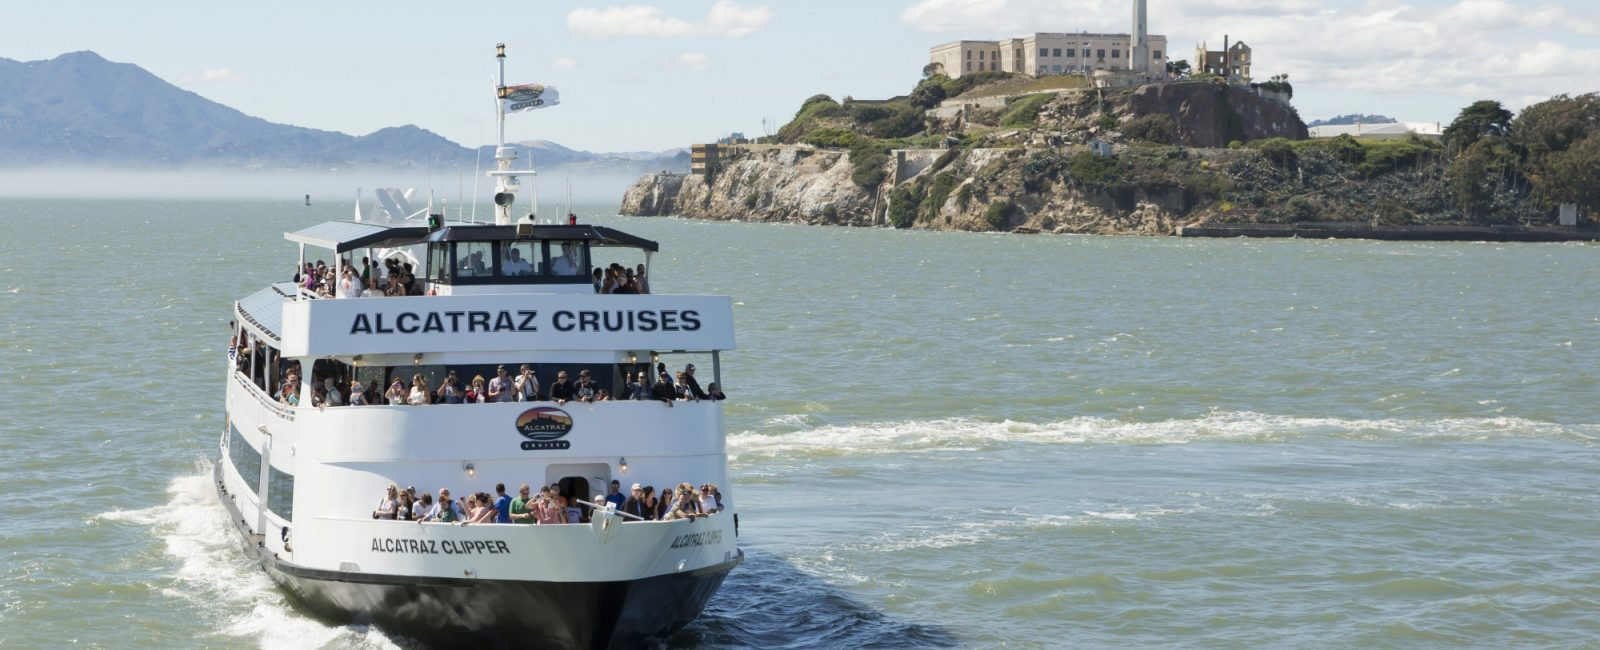 Alcatraz Cruises The Official Website And Only Source For